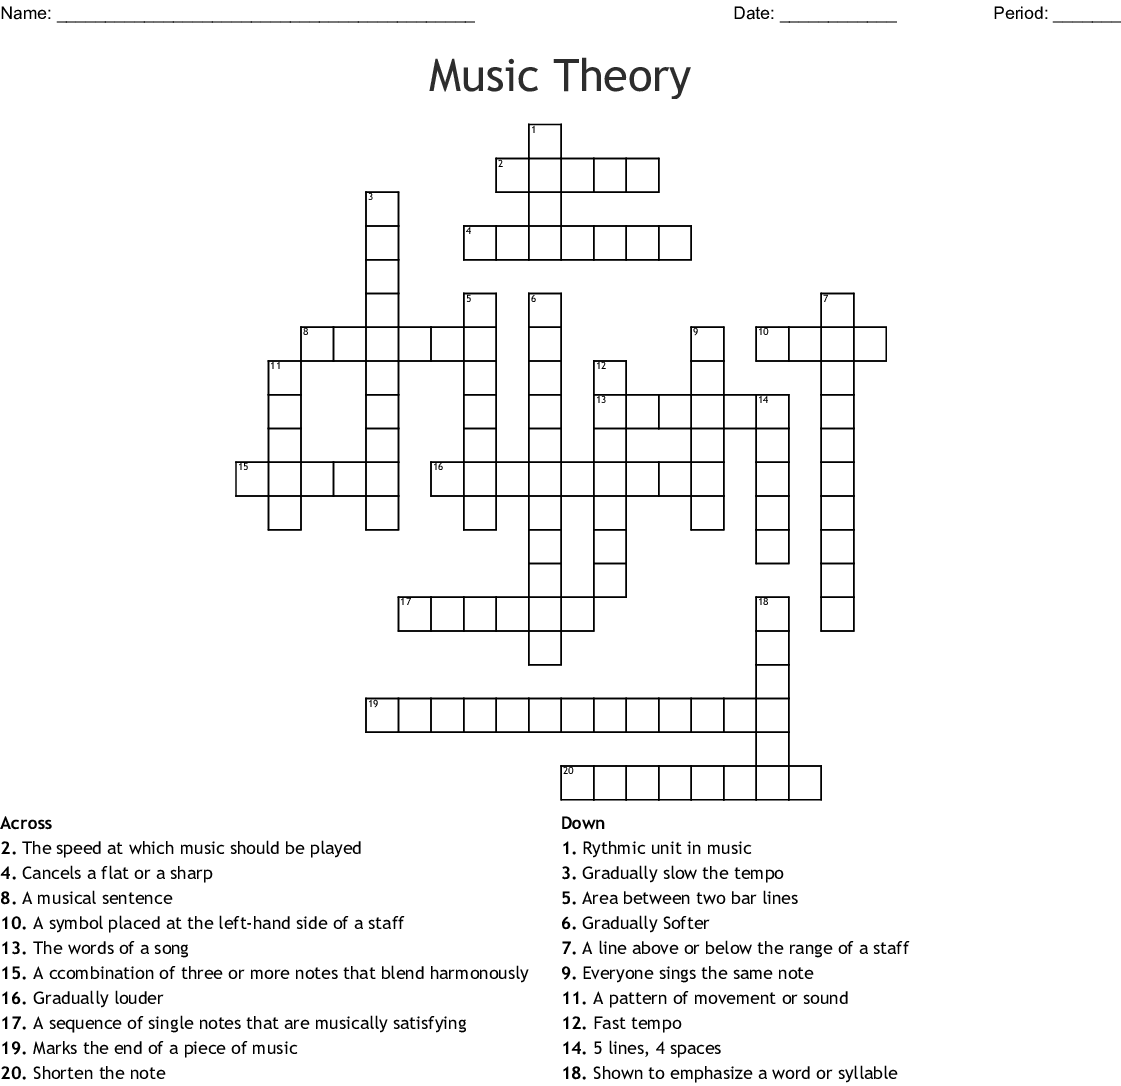 Music Theory Vocal Production Crossword Wordmint